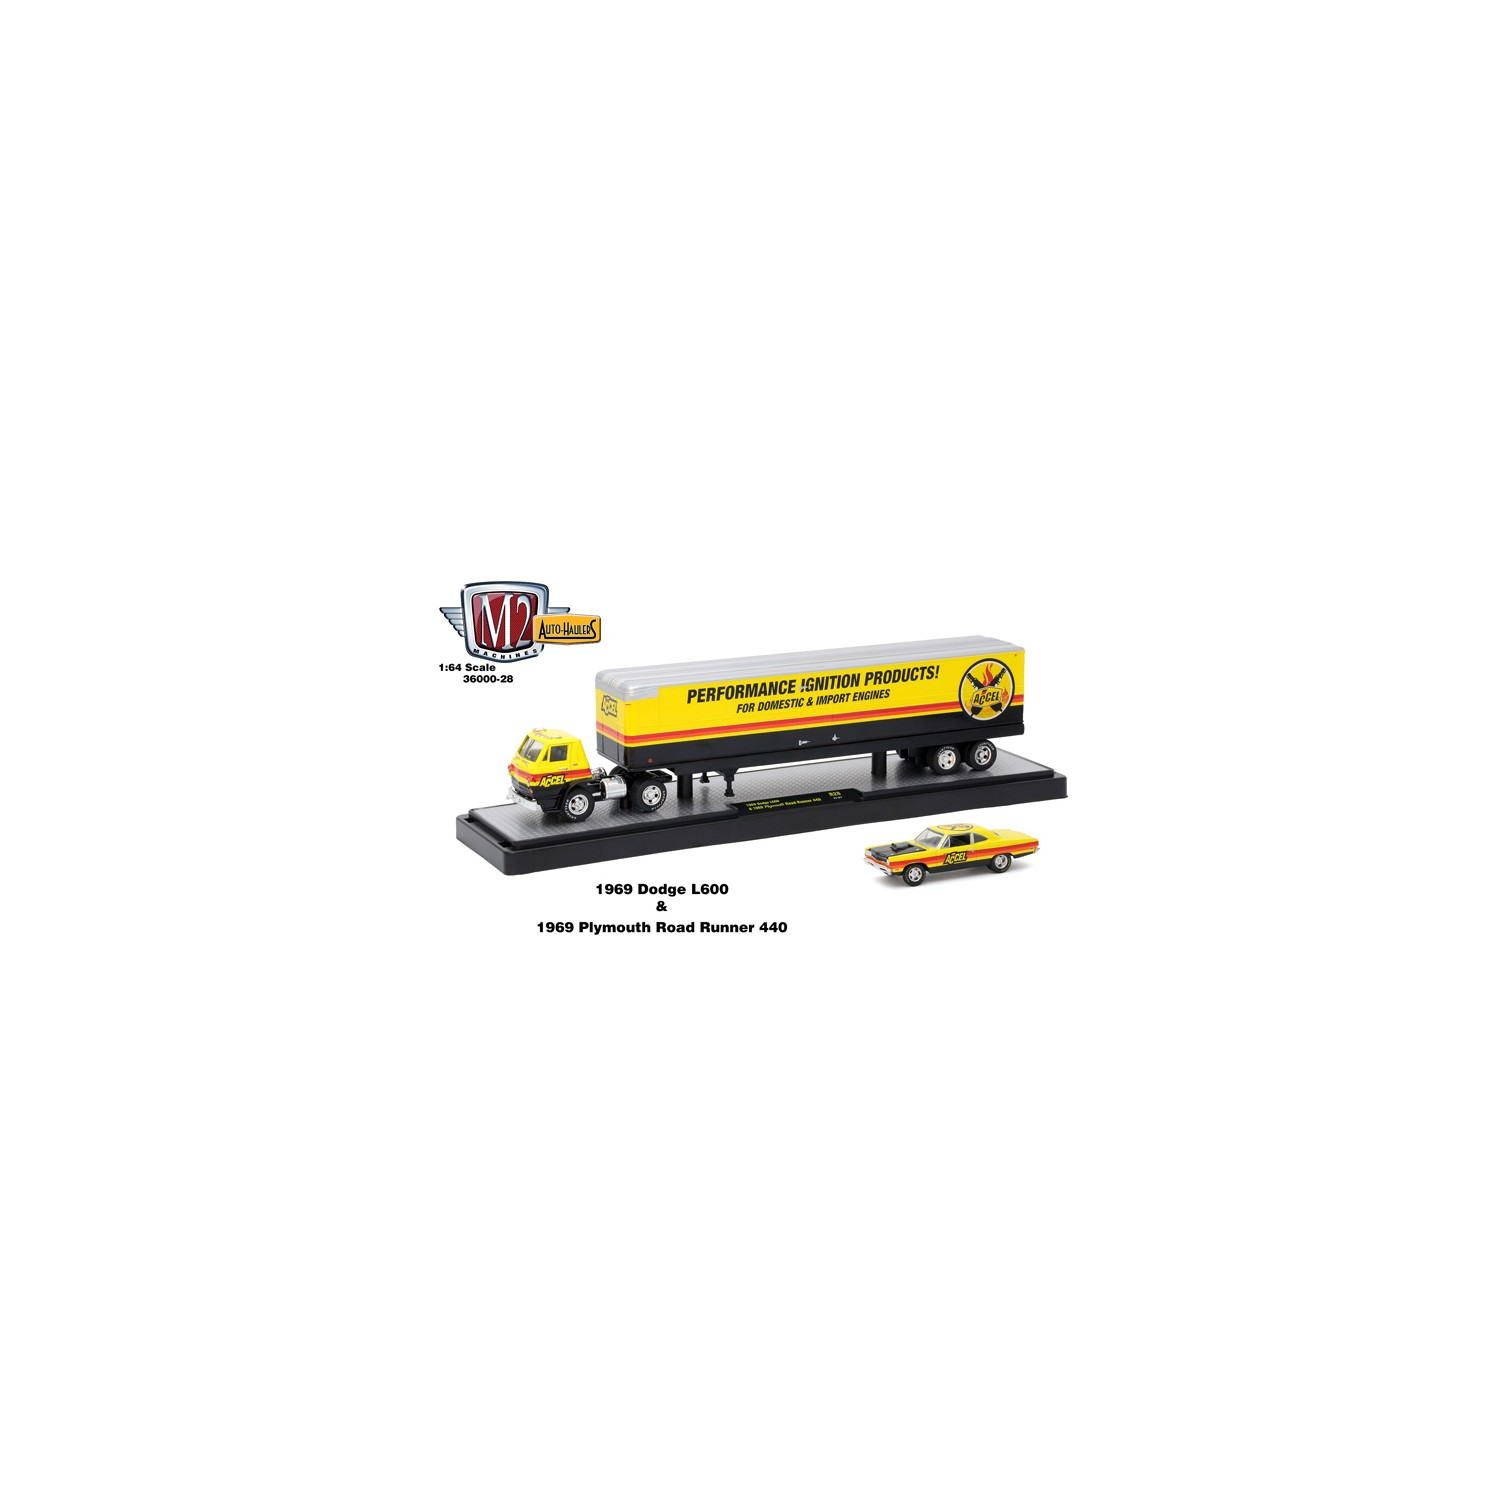 1 64 Scale Fire Engines besides 1942 Auto Haulers Release 28 1969 Dodge L600 And Dry Van Trailer as well Td1797 additionally 710 Hot Pursuit Series 23 Set in addition 2010 Club Vee Dub Series 6 Six Car Set. on ertl 1 64 trucks